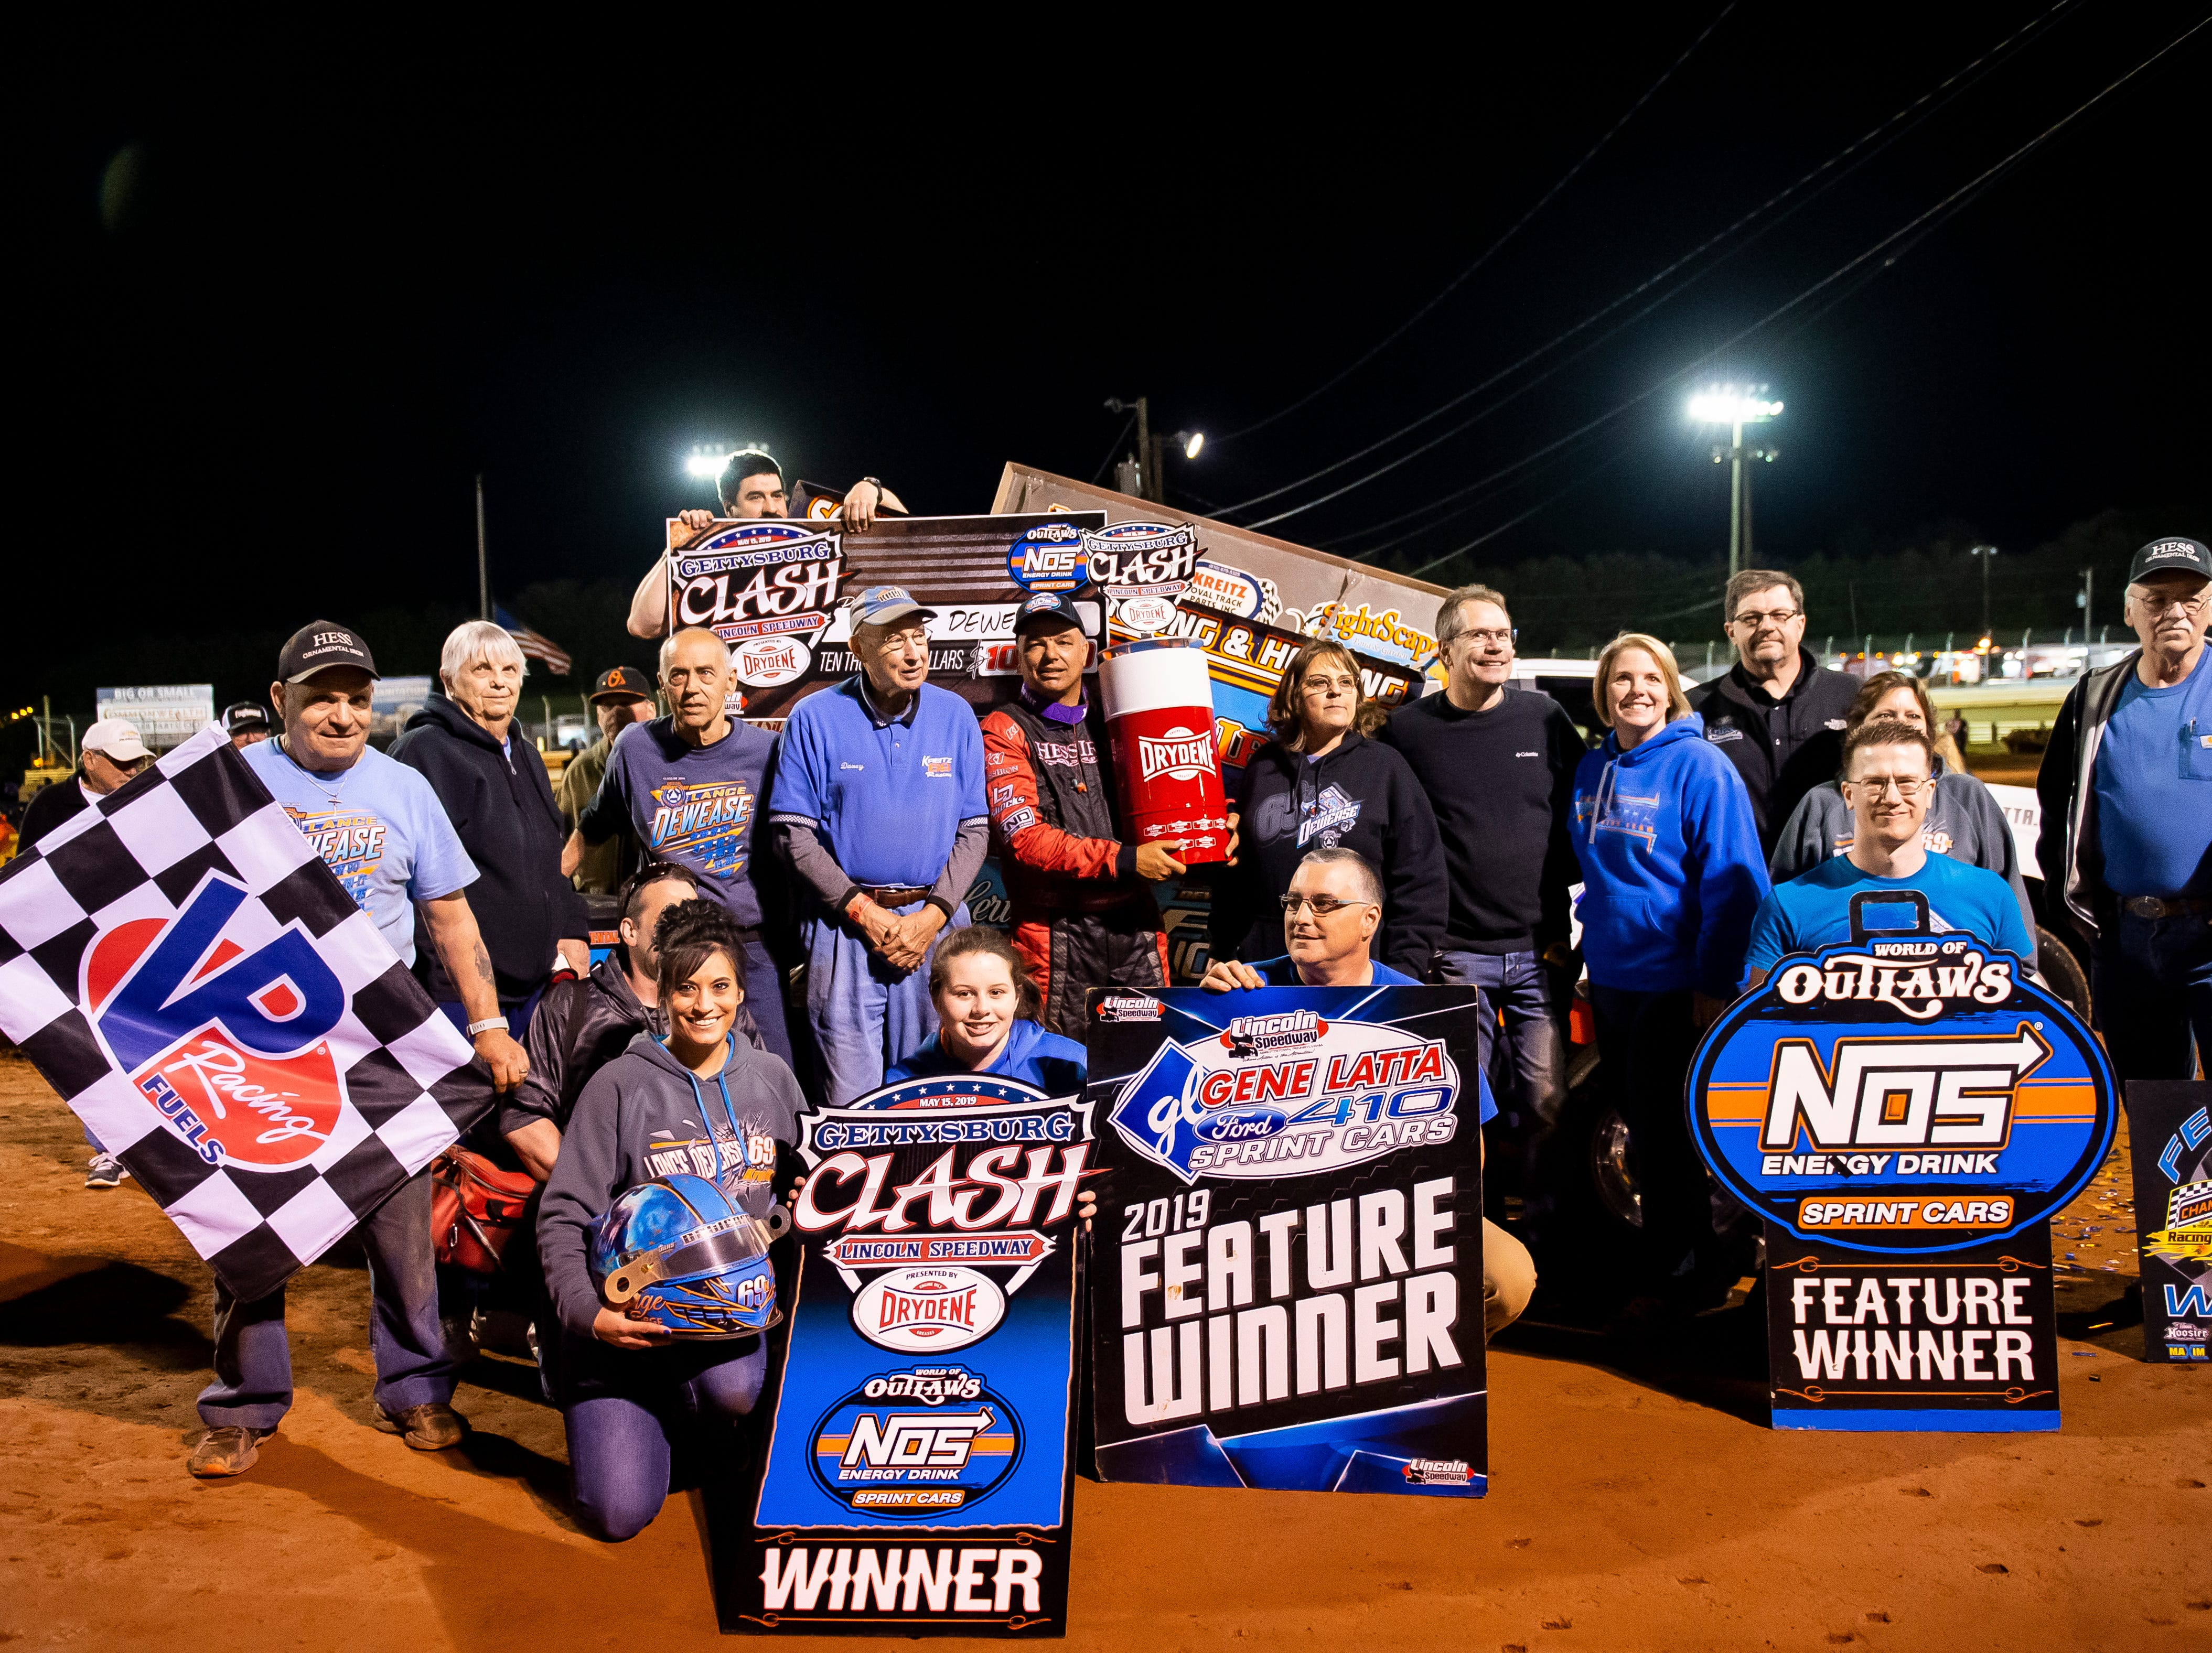 Lance Dewease, center, and team Dewease celebrates after winning the feature race race in the World of Outlaws Gettysburg Clash at Lincoln Speedway in Abbottstown on Wednesday, May 15, 2019.